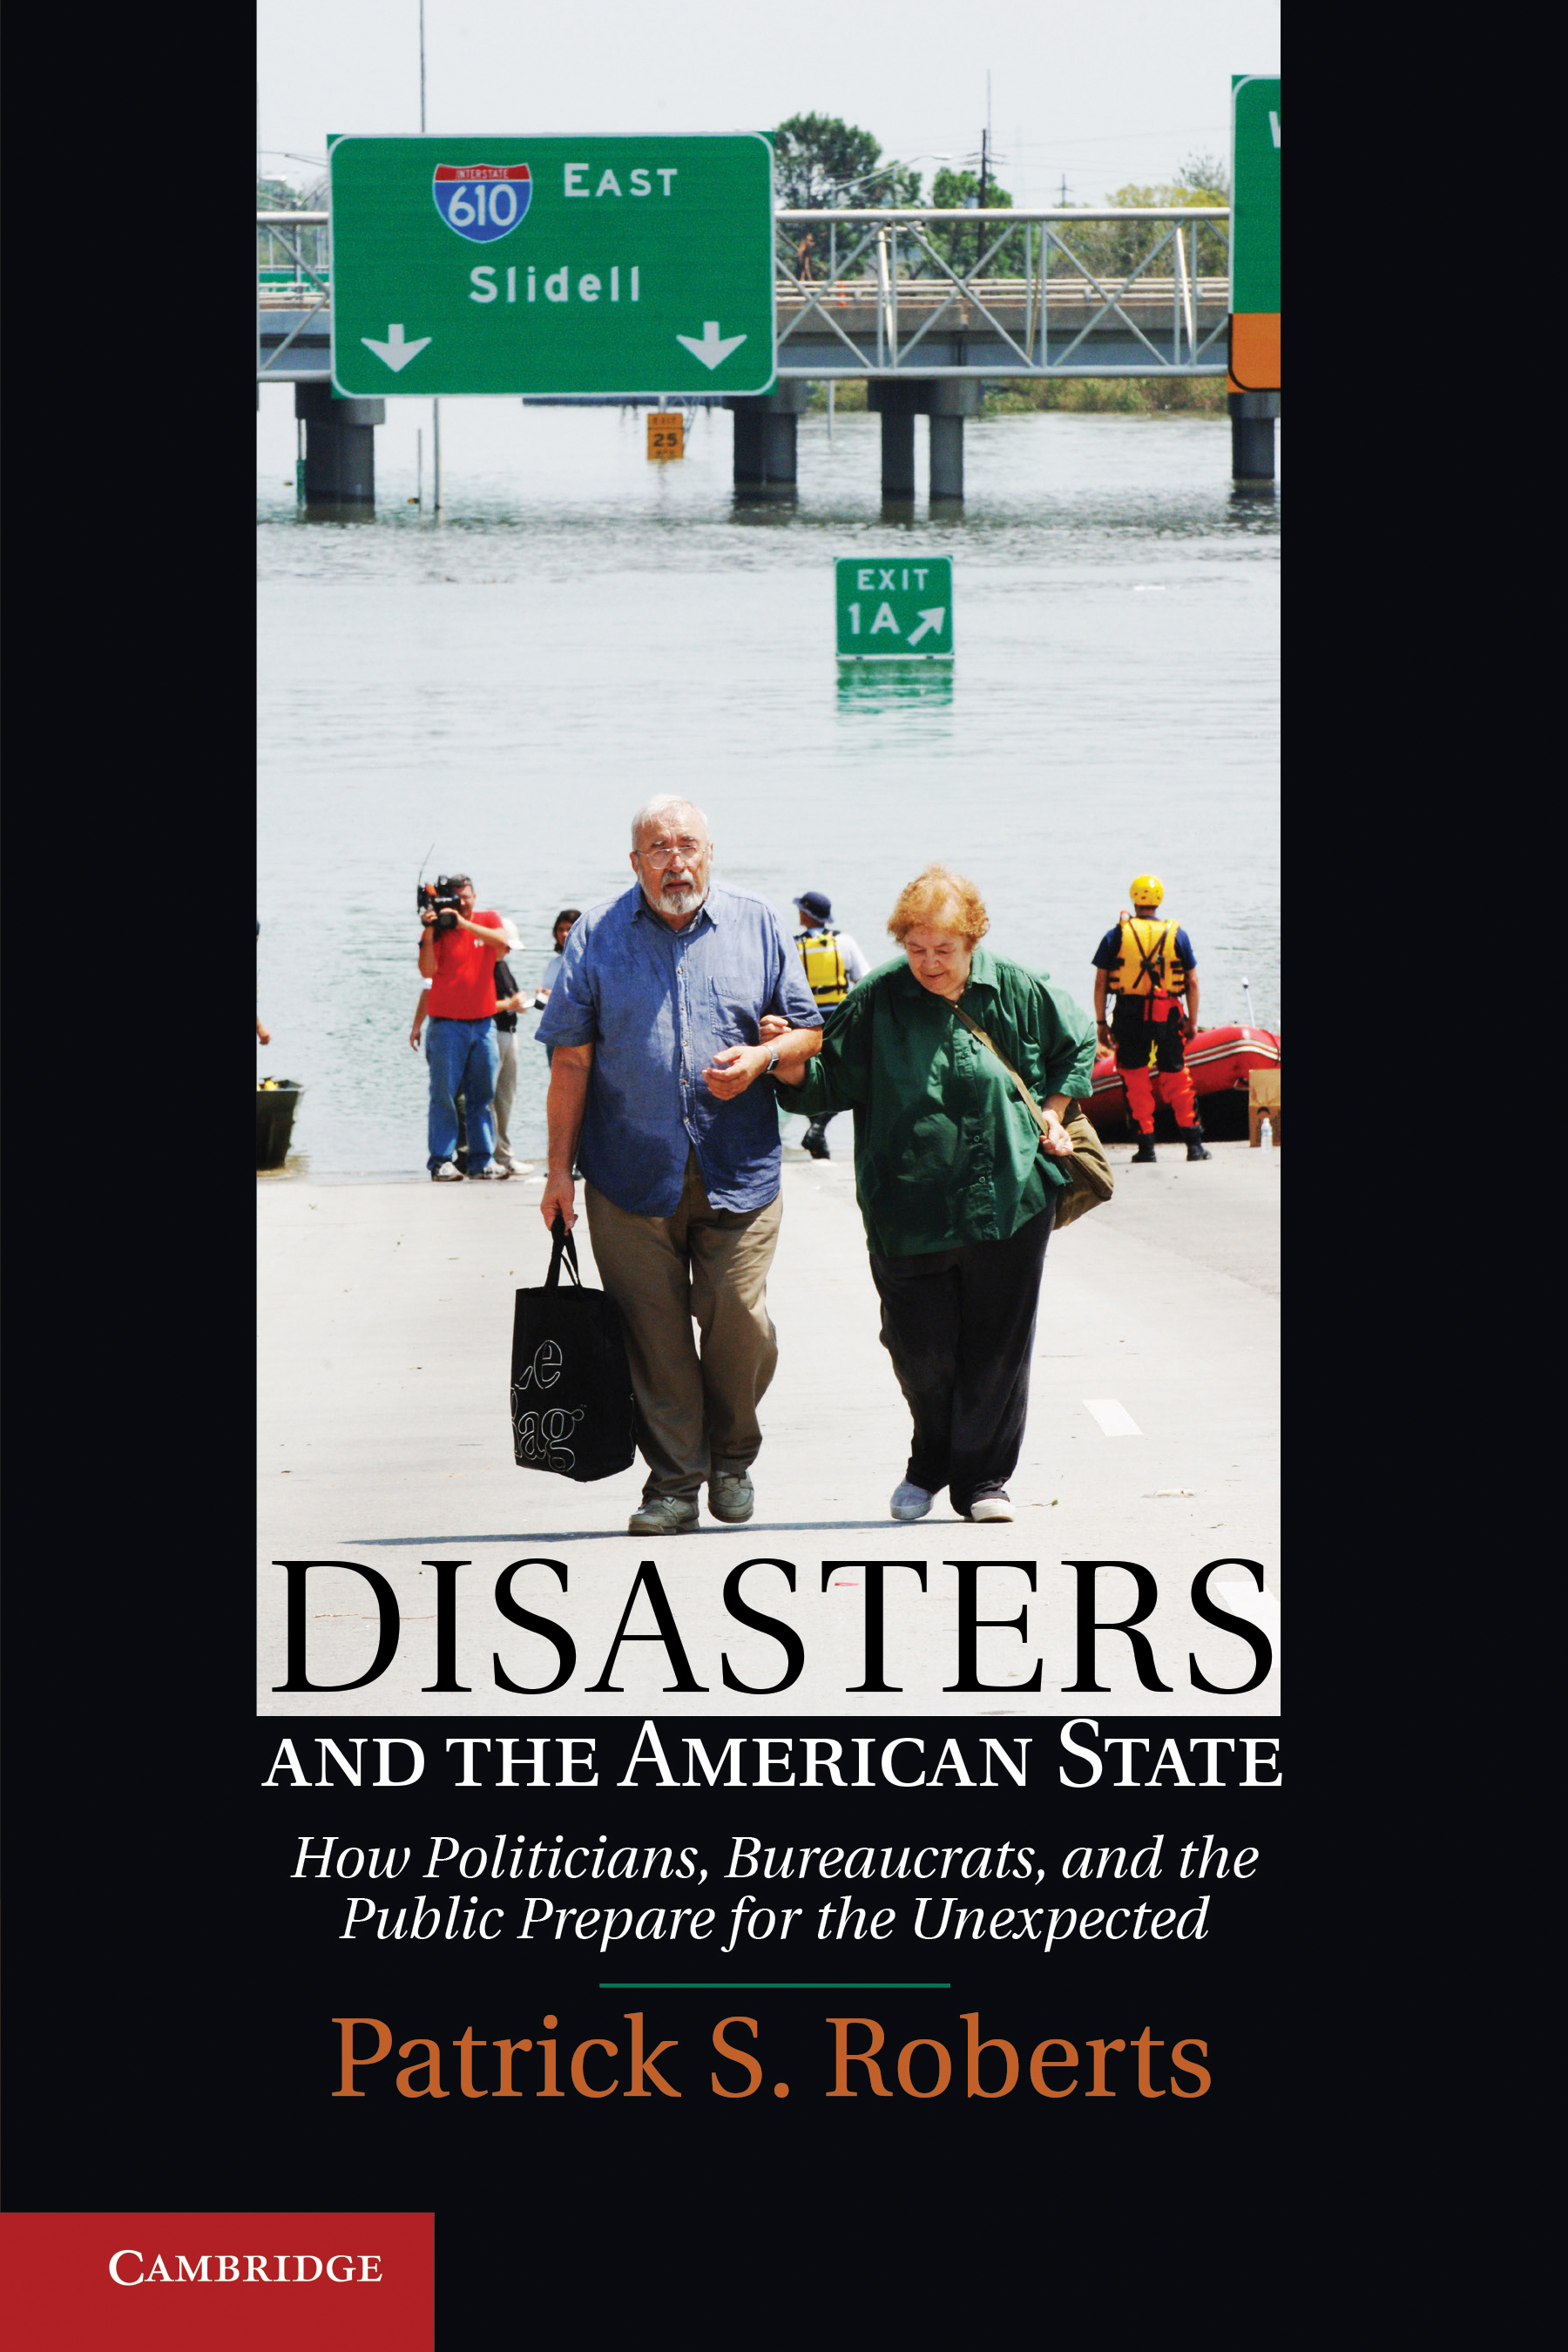 A book cover showing an older, distressed man supporting a woman as they walk away from a flood